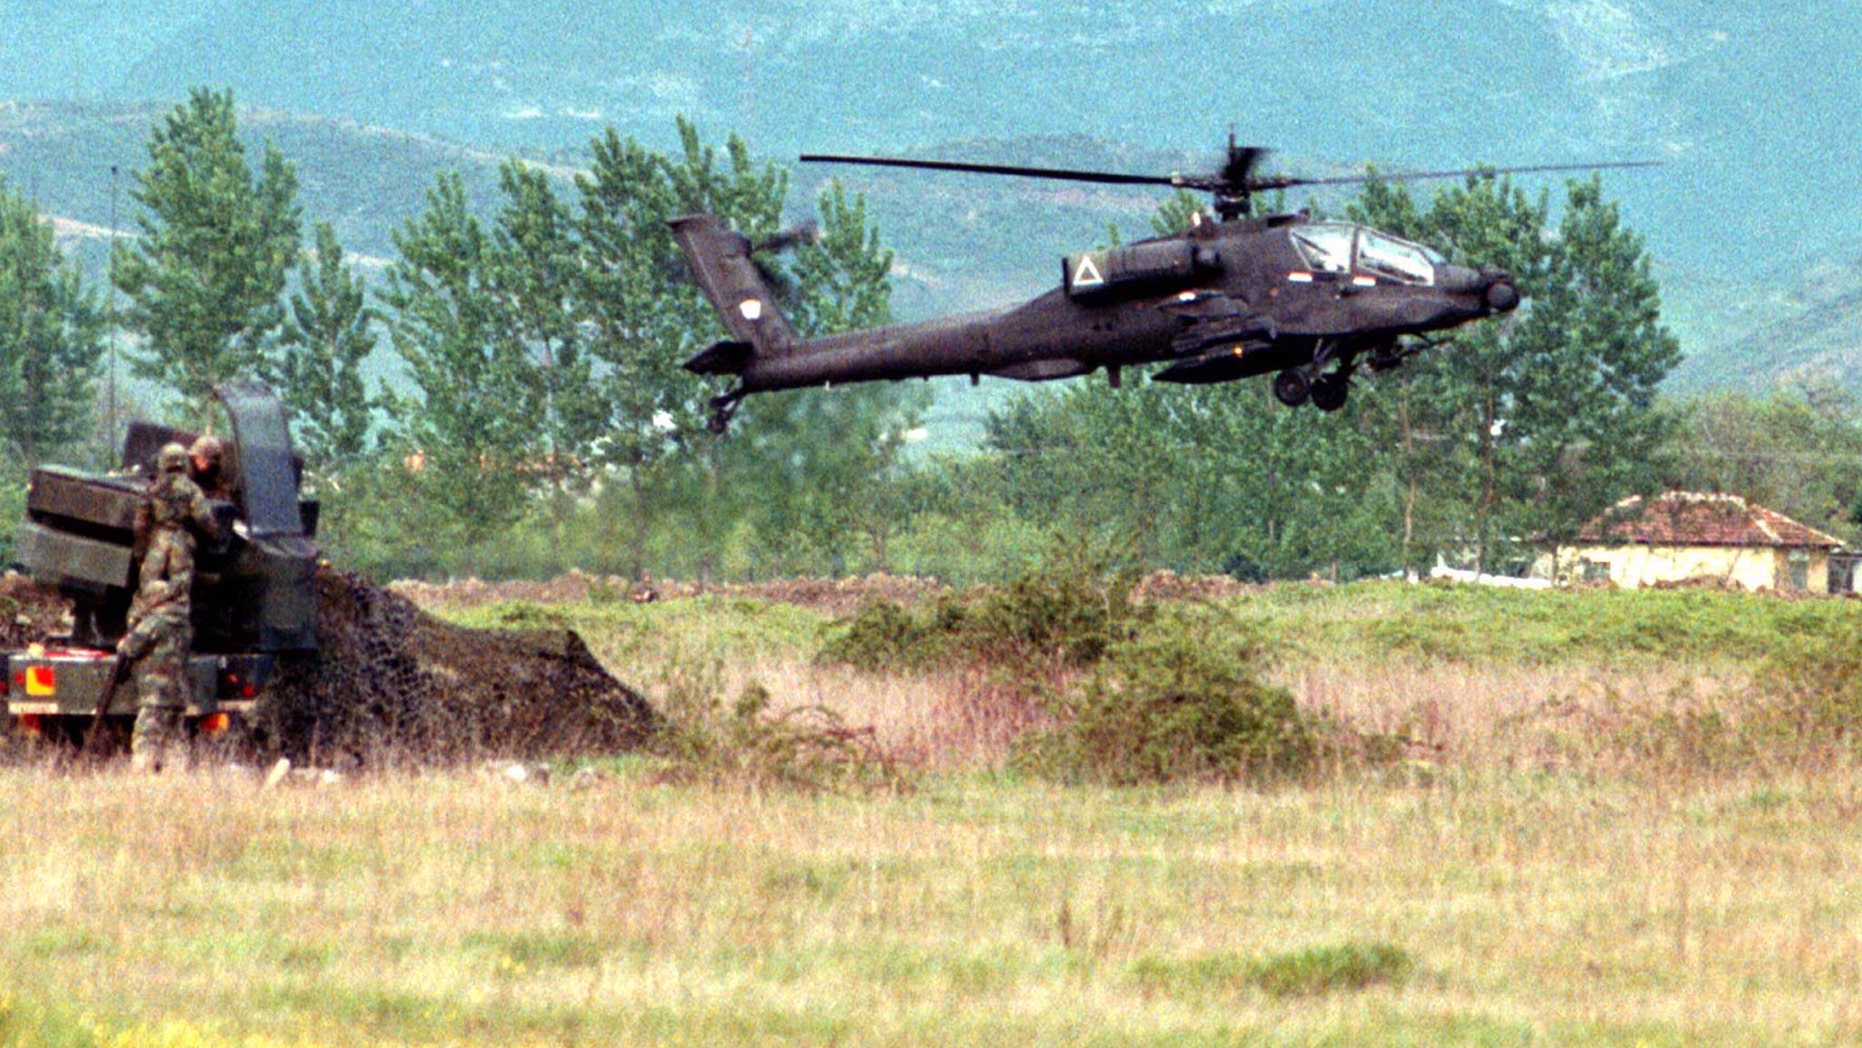 File photo: A U.S. Apache attack helicopter lands at Tirana's Rinas airport after a week of delays. MSP/JRE